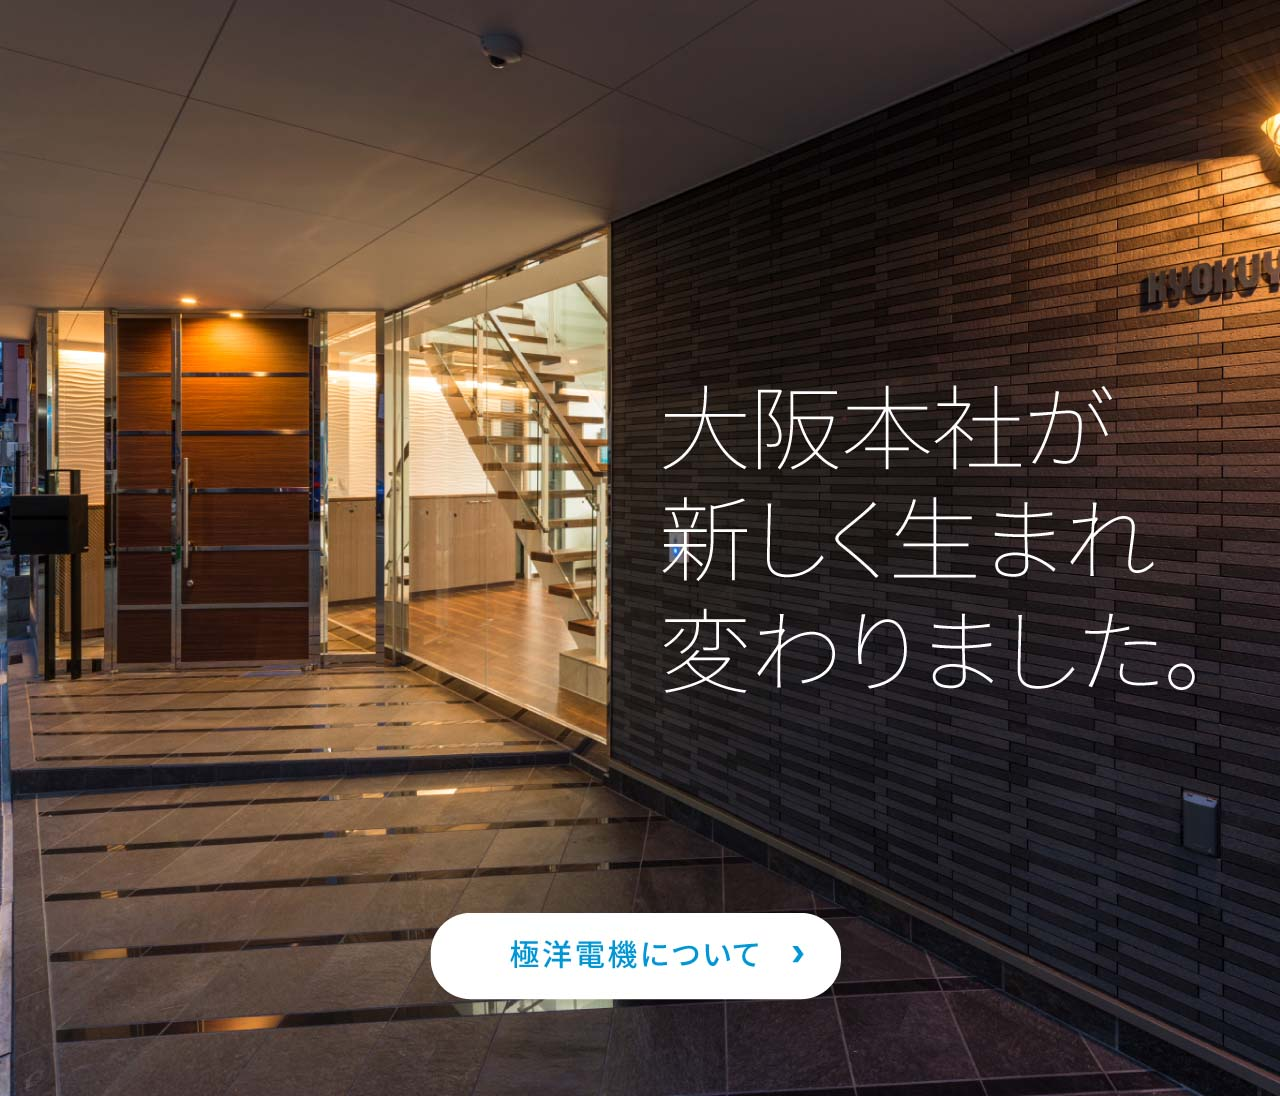 Renewal Osaka head office About us